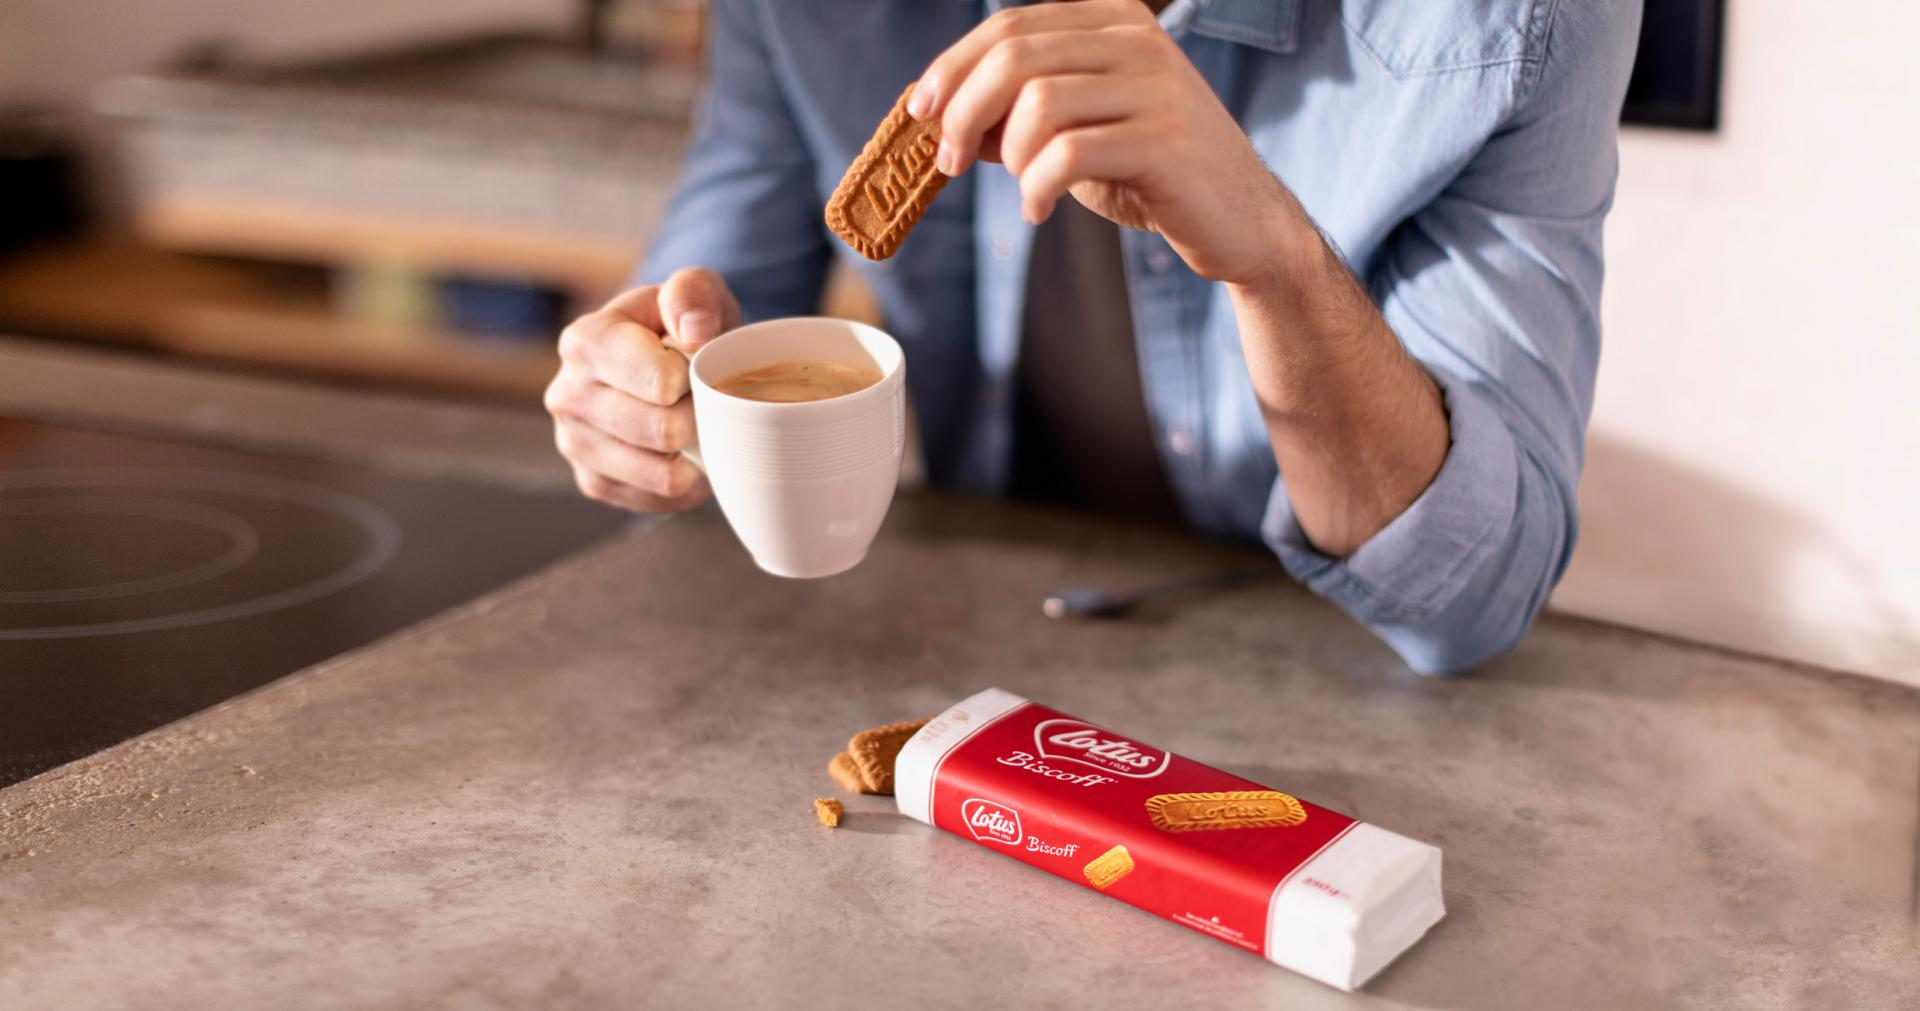 The secret of Lotus Biscoff?